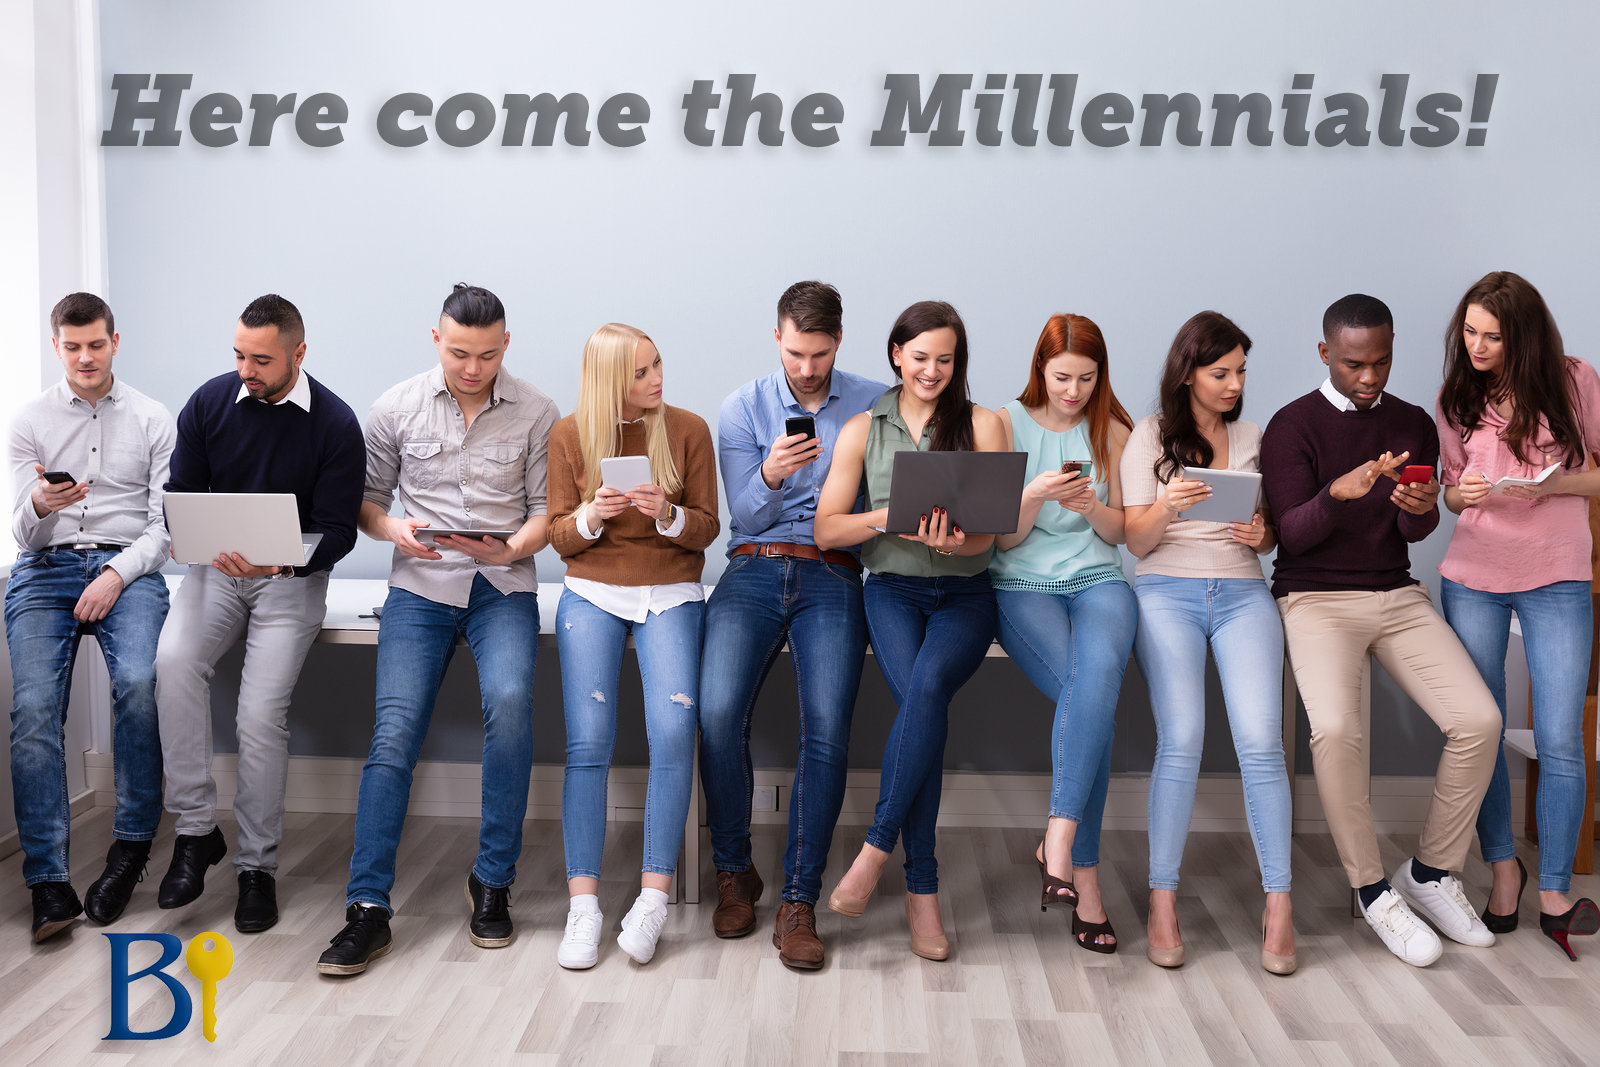 Here come the Millennials!